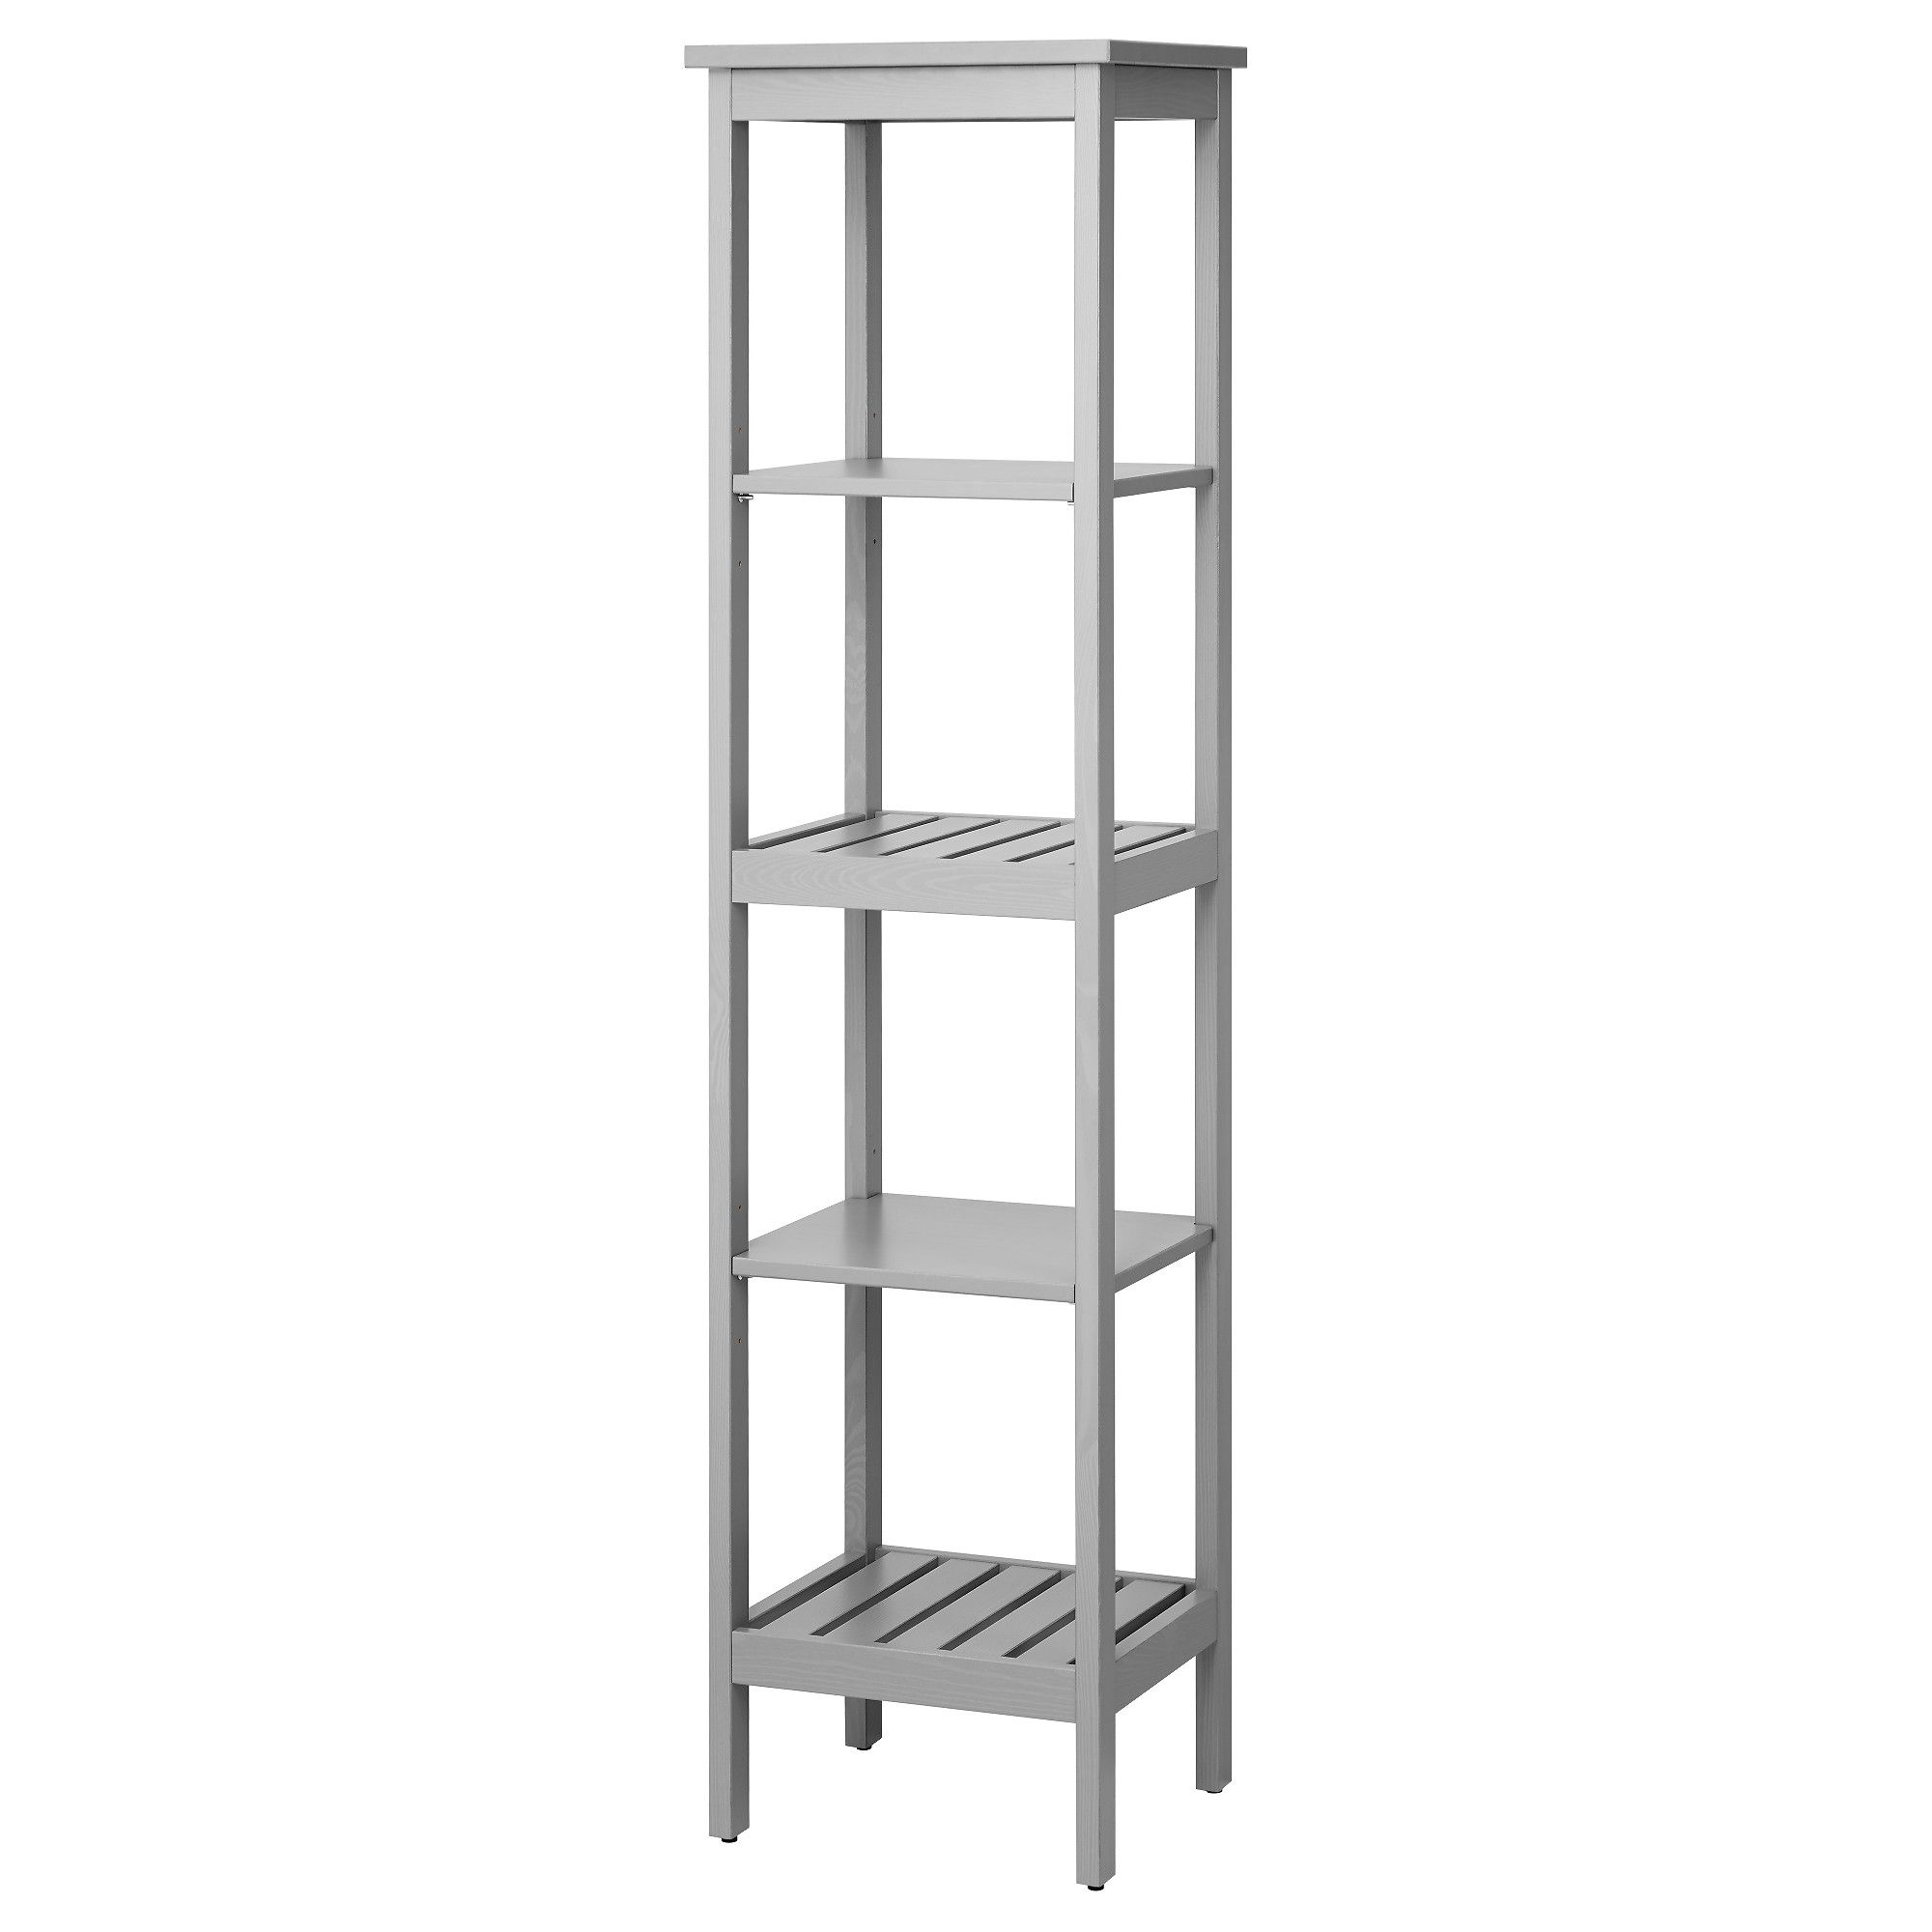 Ikea Hemnes Shelf Unit Gray Hemnes Bathroom Shelf Decor Small Bathroom Decor